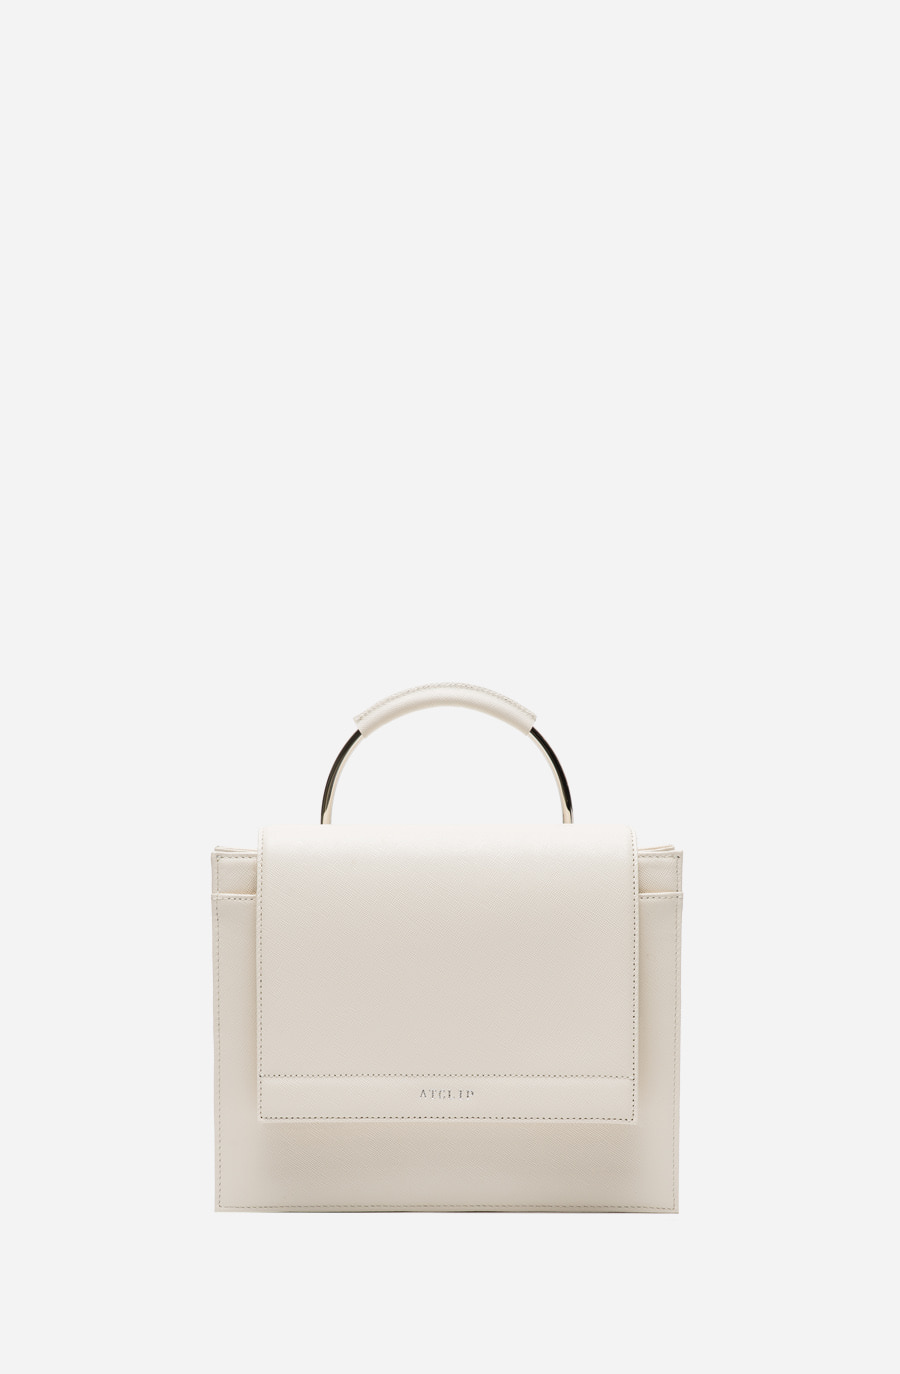 ARC BAG (cream)